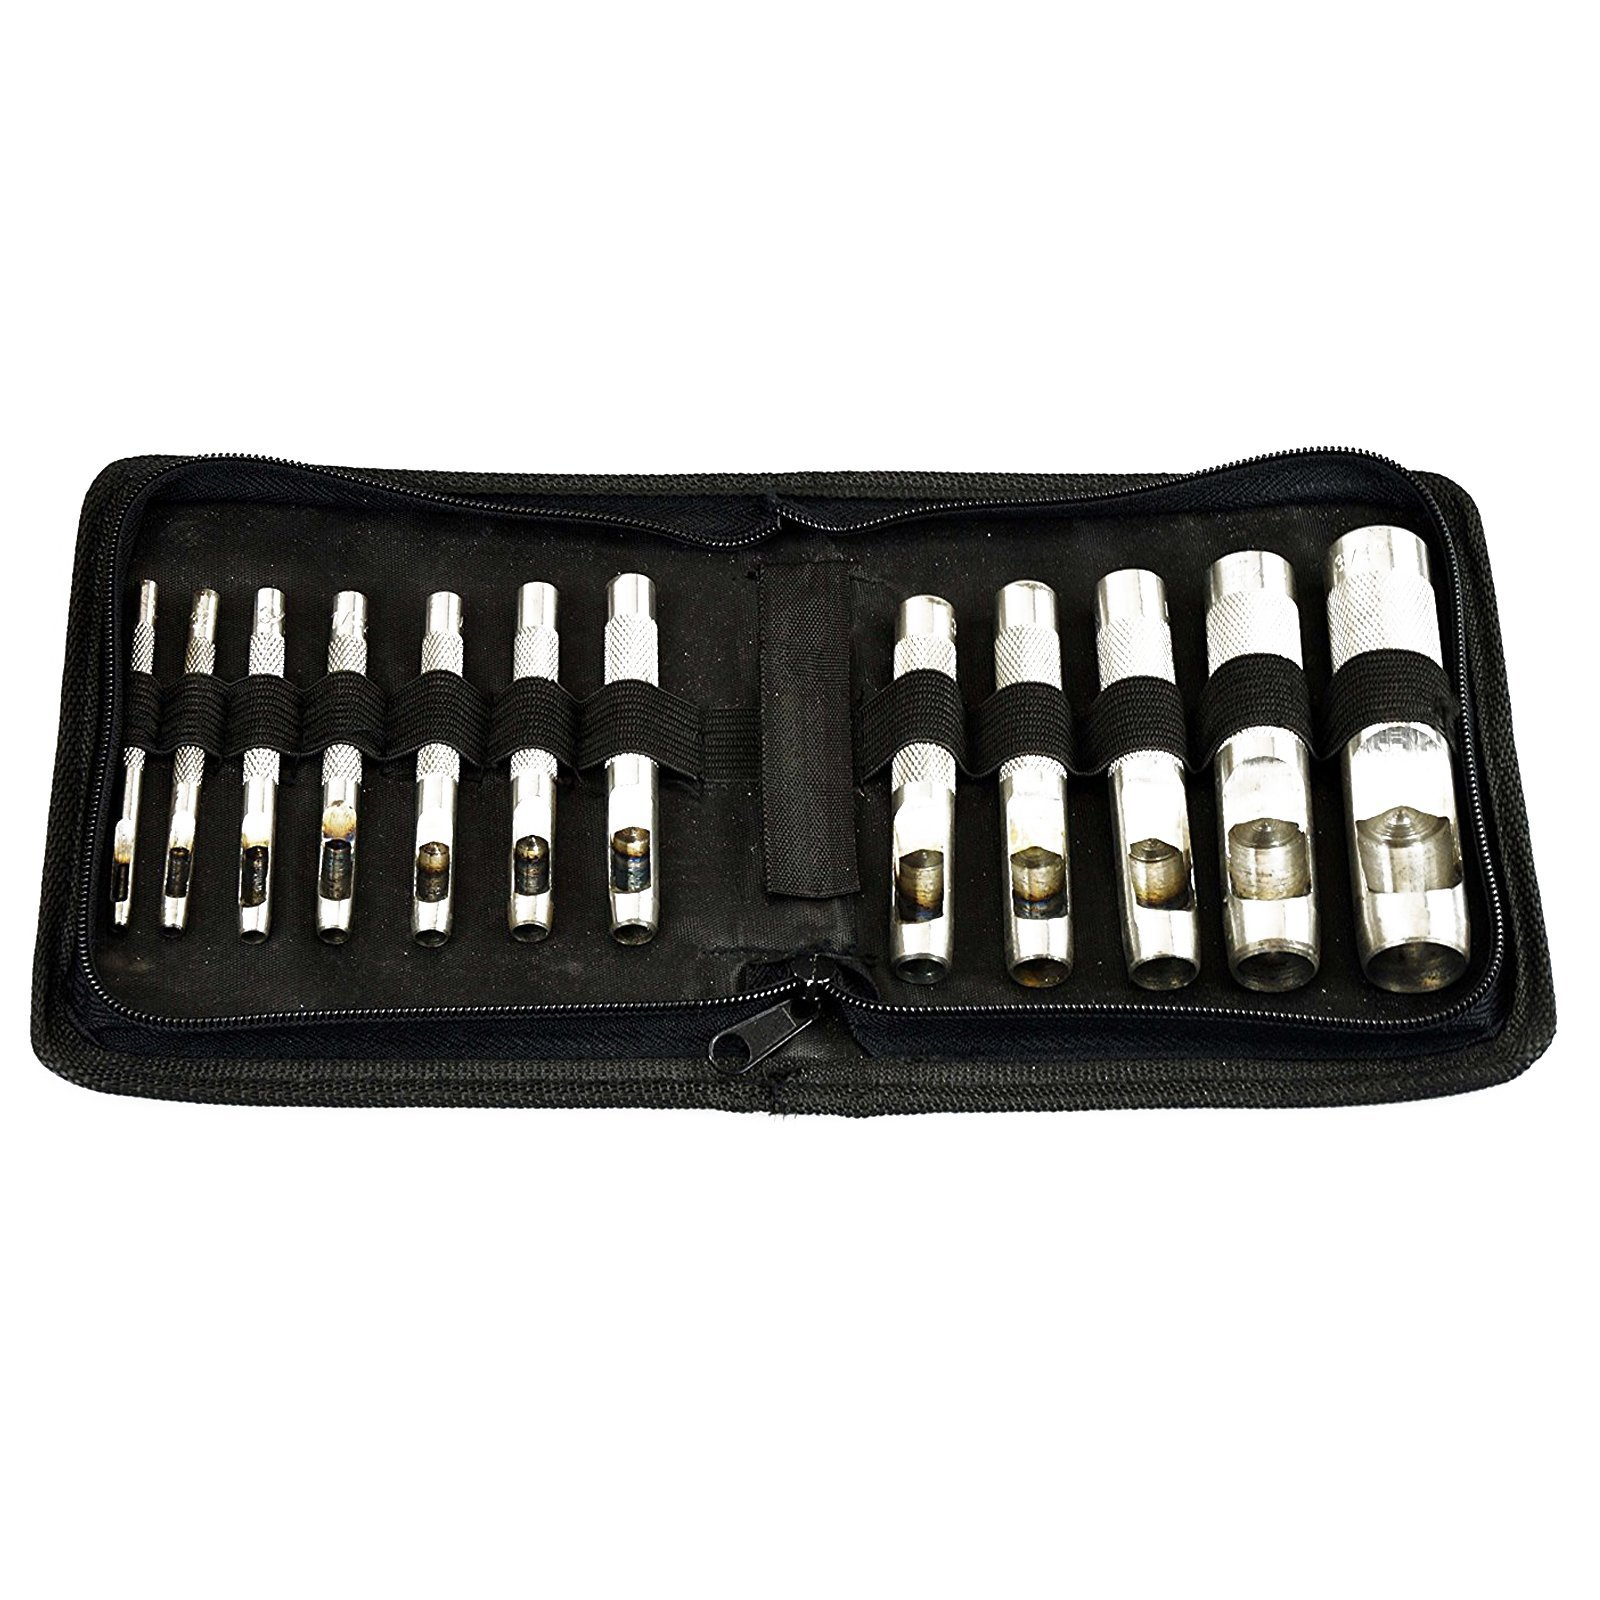 SE 791LP Heavy-Duty 12-Piece Hollow Punch Set with Zipper Pouch